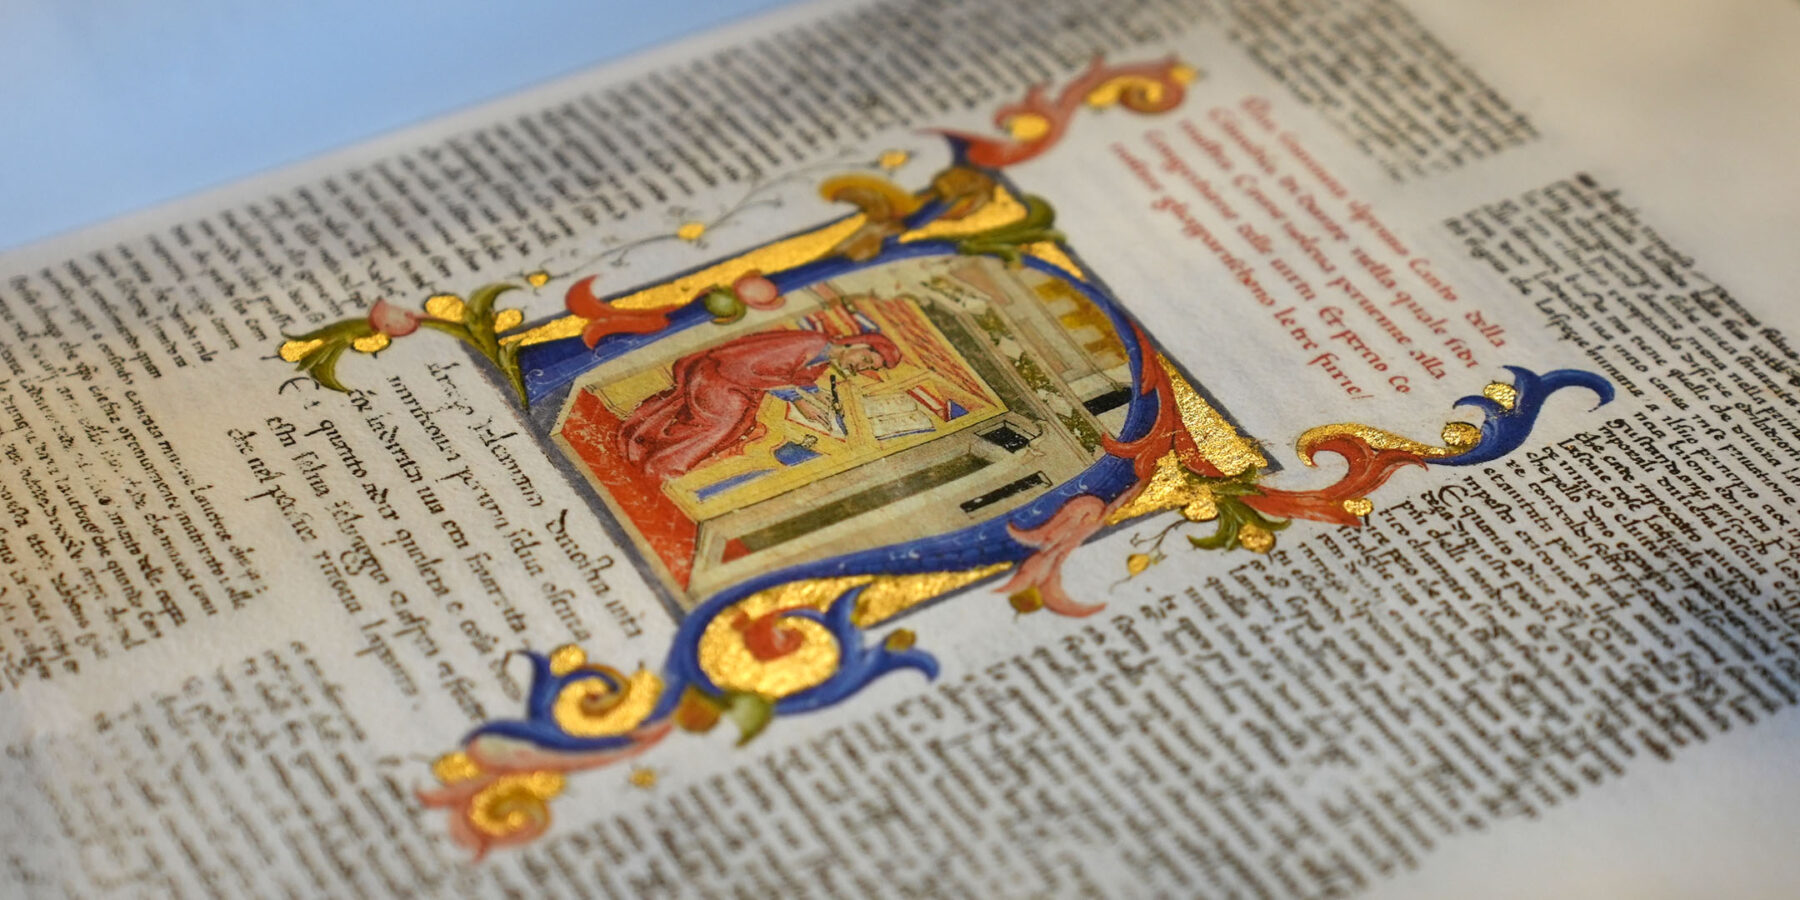 """A handmade illuminated anastatic copy of one of the oldest and most richly decorated Medieval examples of Dante's Divine Comedy """"Inferno"""" on display in Toronto."""